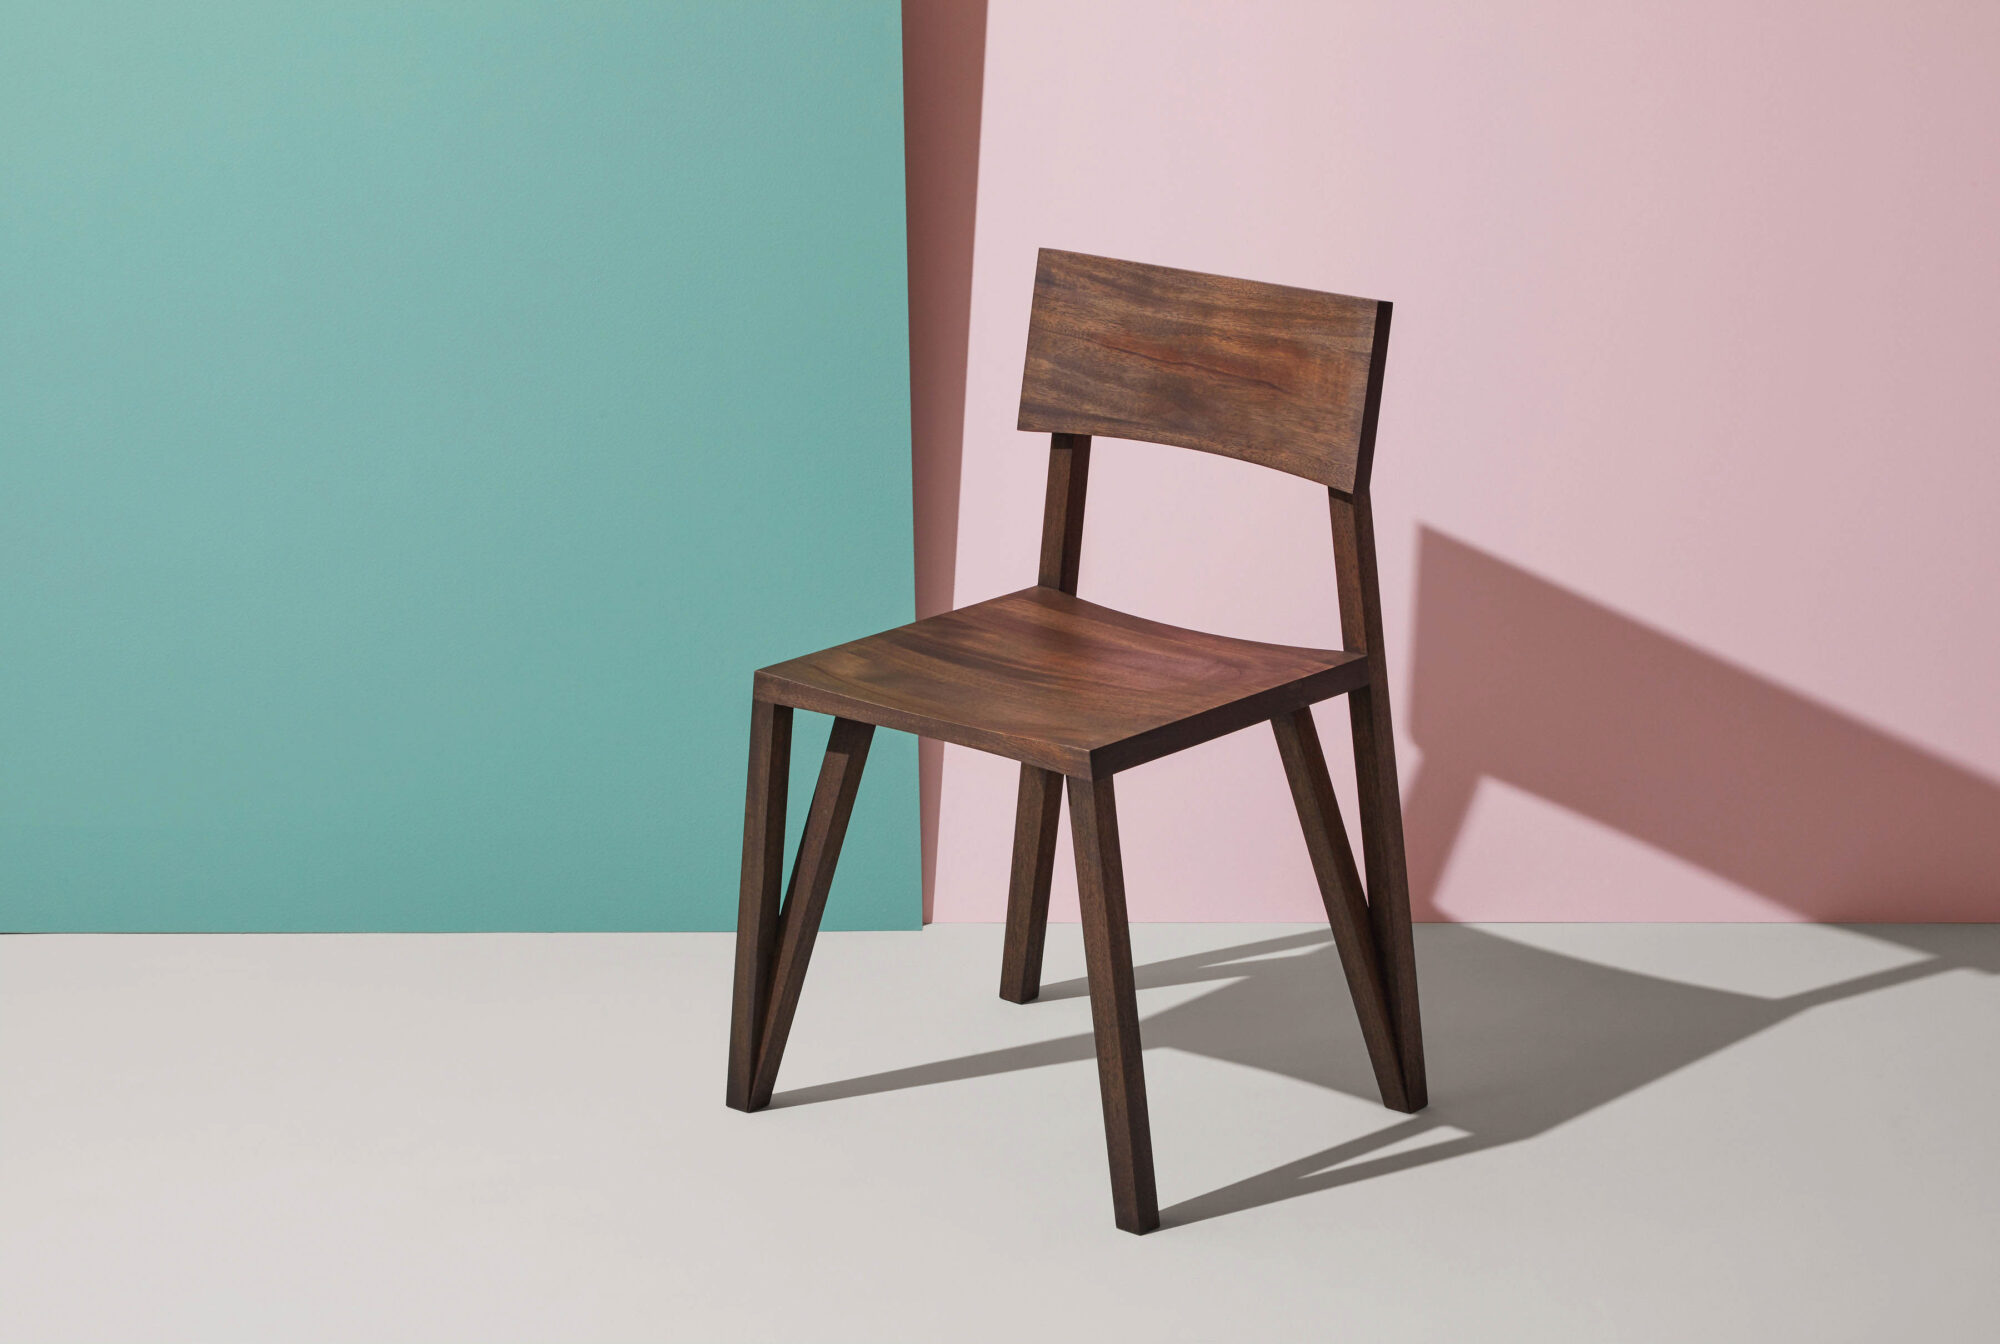 A Chicago Collective's New Line Of Minimalist Furniture Focuses On The Details